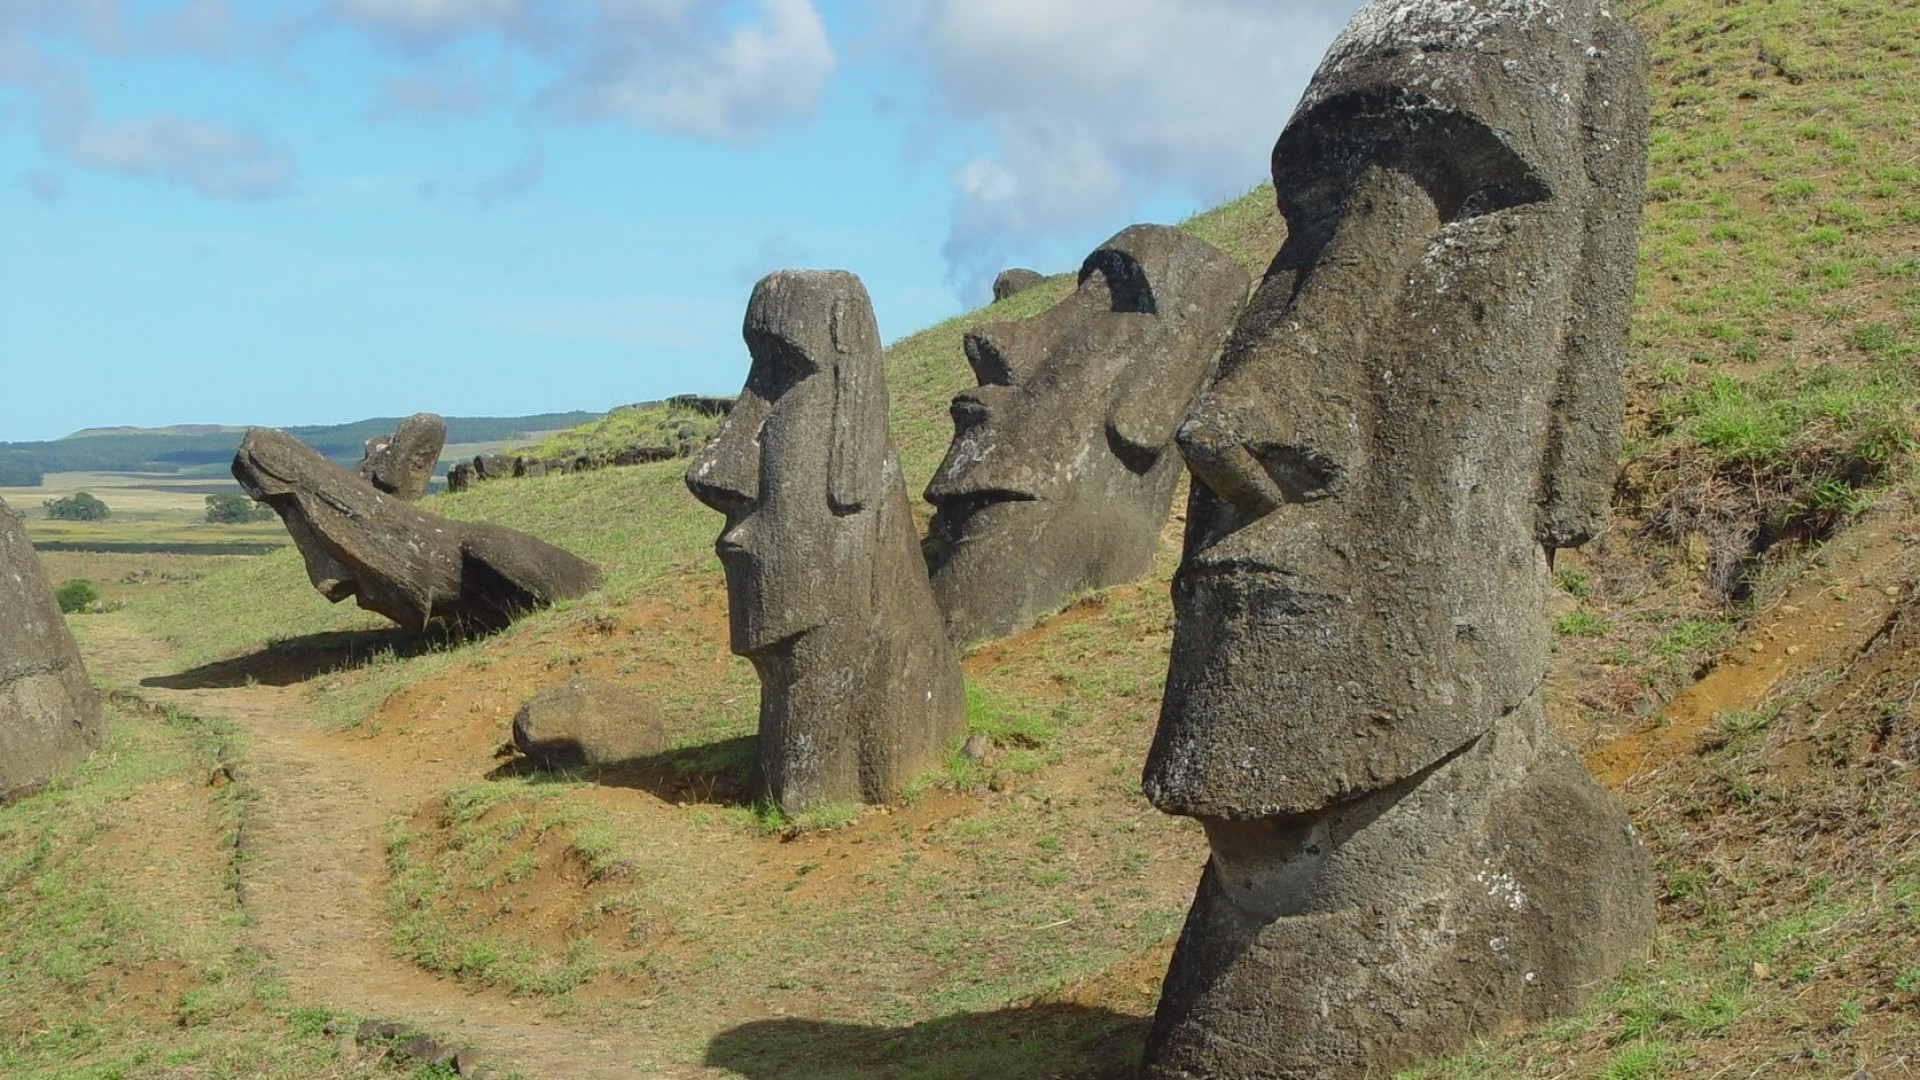 easter island essay Easter island many years ago a small island was found in the middle of the ocean it was soon named easter island and held many mysterious questions that were yet to.